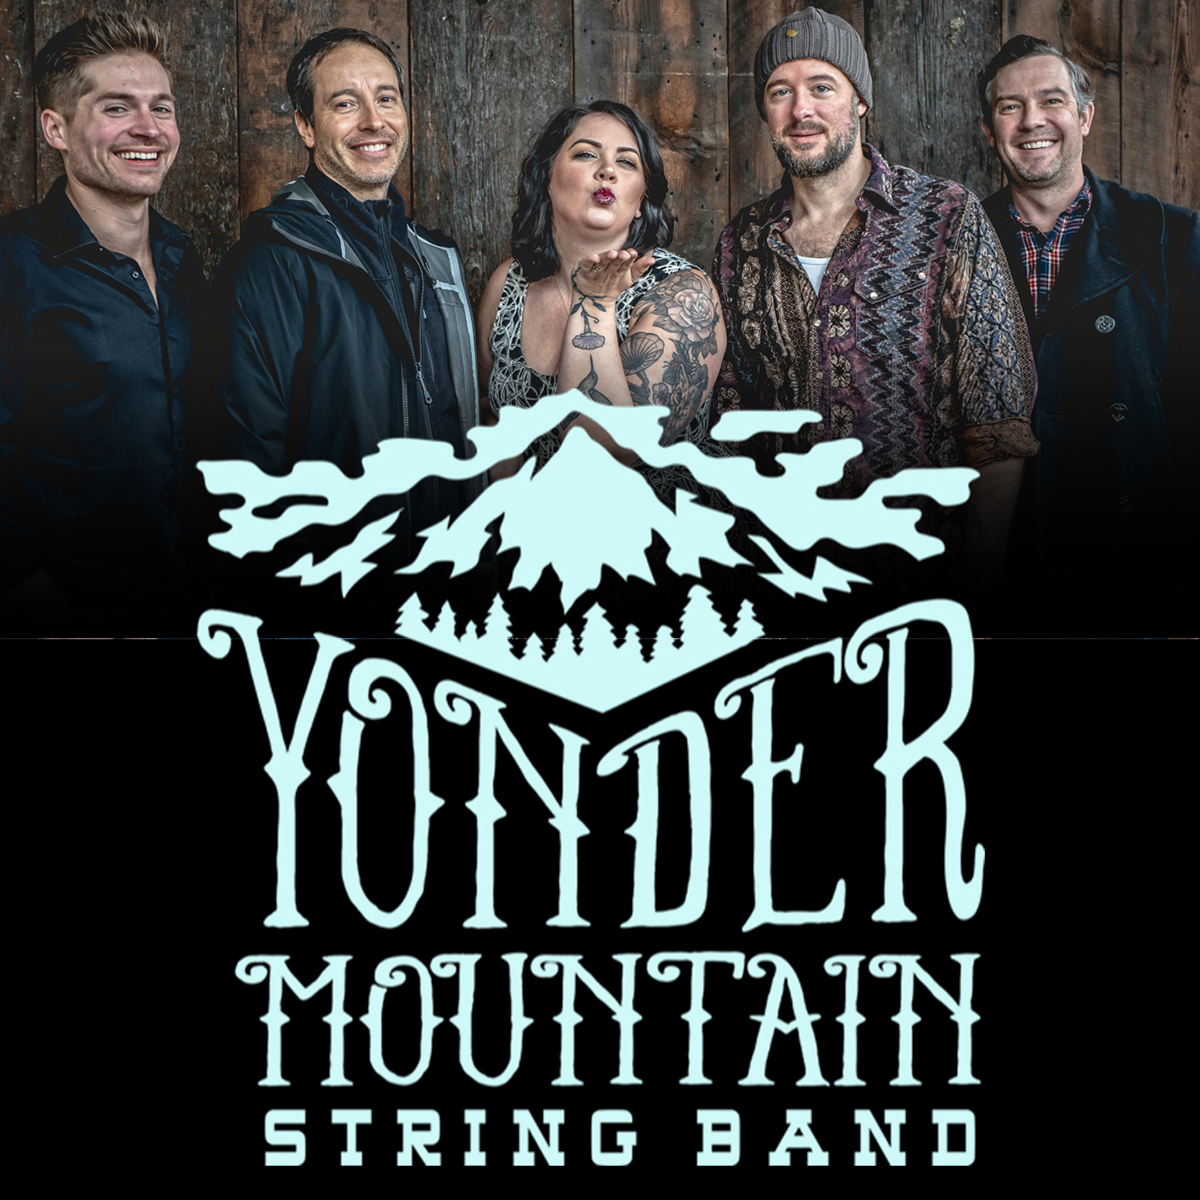 YONDER MOUNTAIN STRING BAND with Fireside Collective